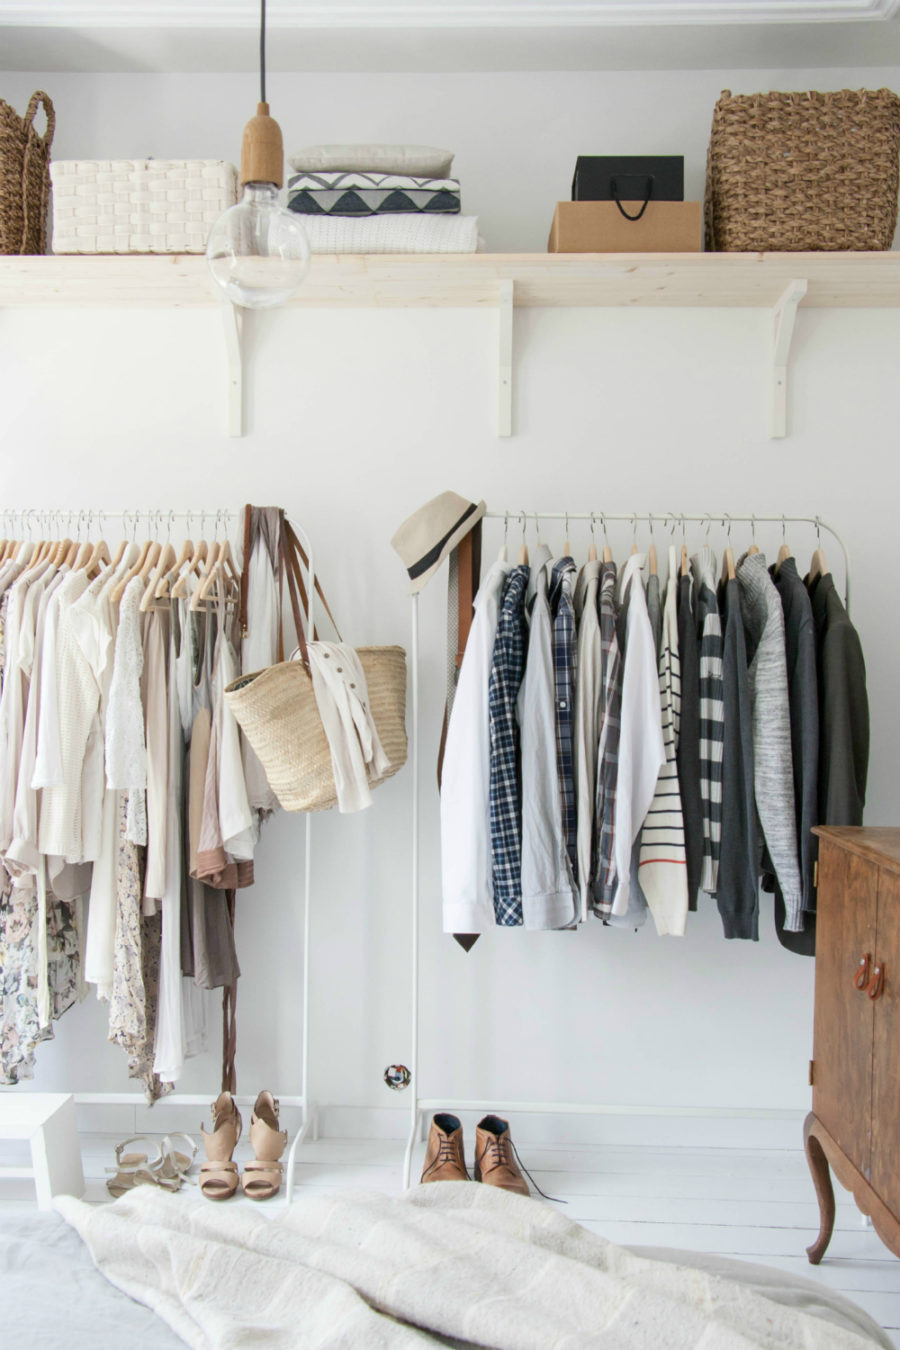 Superieur Here Are 30 Stunning Open Closet Ideas For Inspiration That Will Help You  Plan And Display Your Wardrobe Beautifully And Correctly.